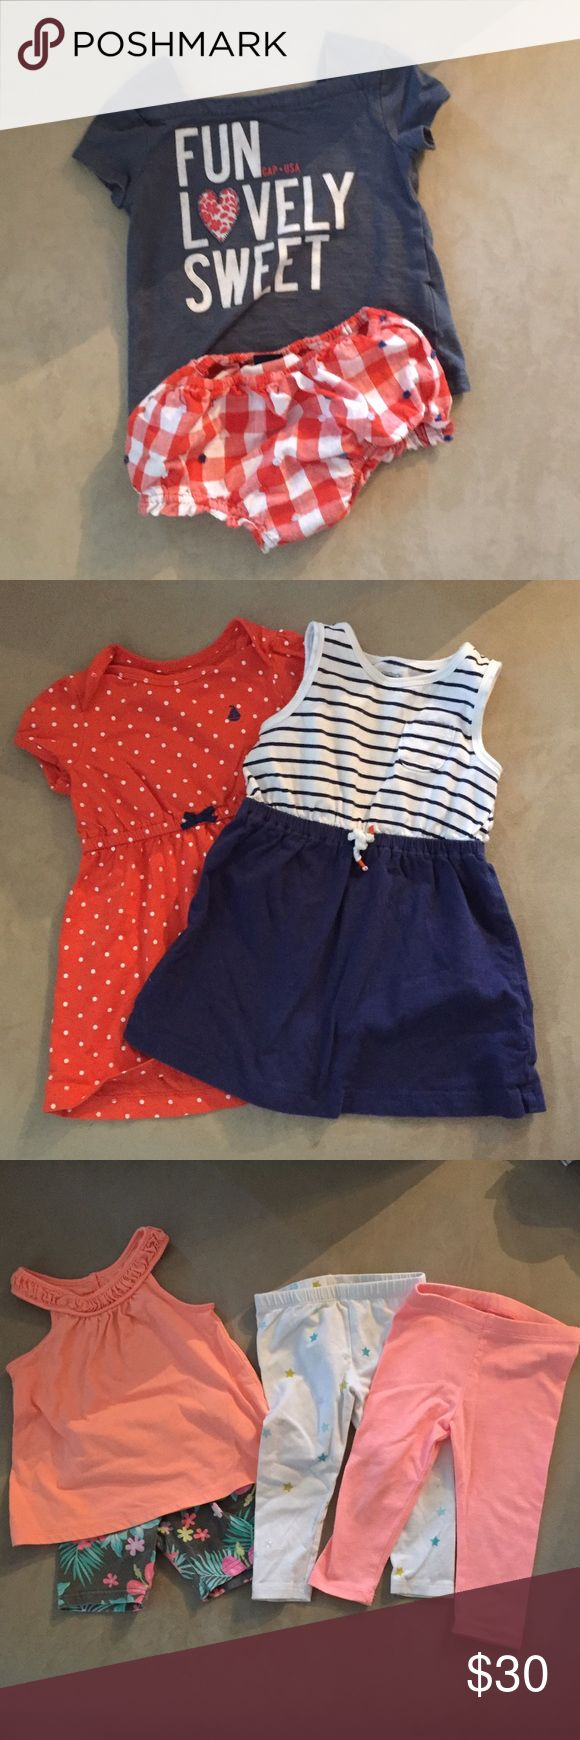 Toddler girls 18-24 month summer clothes Baby Gap outfit 18-24 month EUC. Carter's 18 month dresses. Carter's 18 month outfit GUC. OshKosh white tights with stars and Circo orange tights 18 mo. Baby Gap red orange shorts EUC 18-24 mo. Floral Cherokee shorts 18 mo. Crazy 8 elephant outfit 18-24 GUC with small stain on shirt (tan colored, so you can't tell in pic). GAP Shirts & Tops